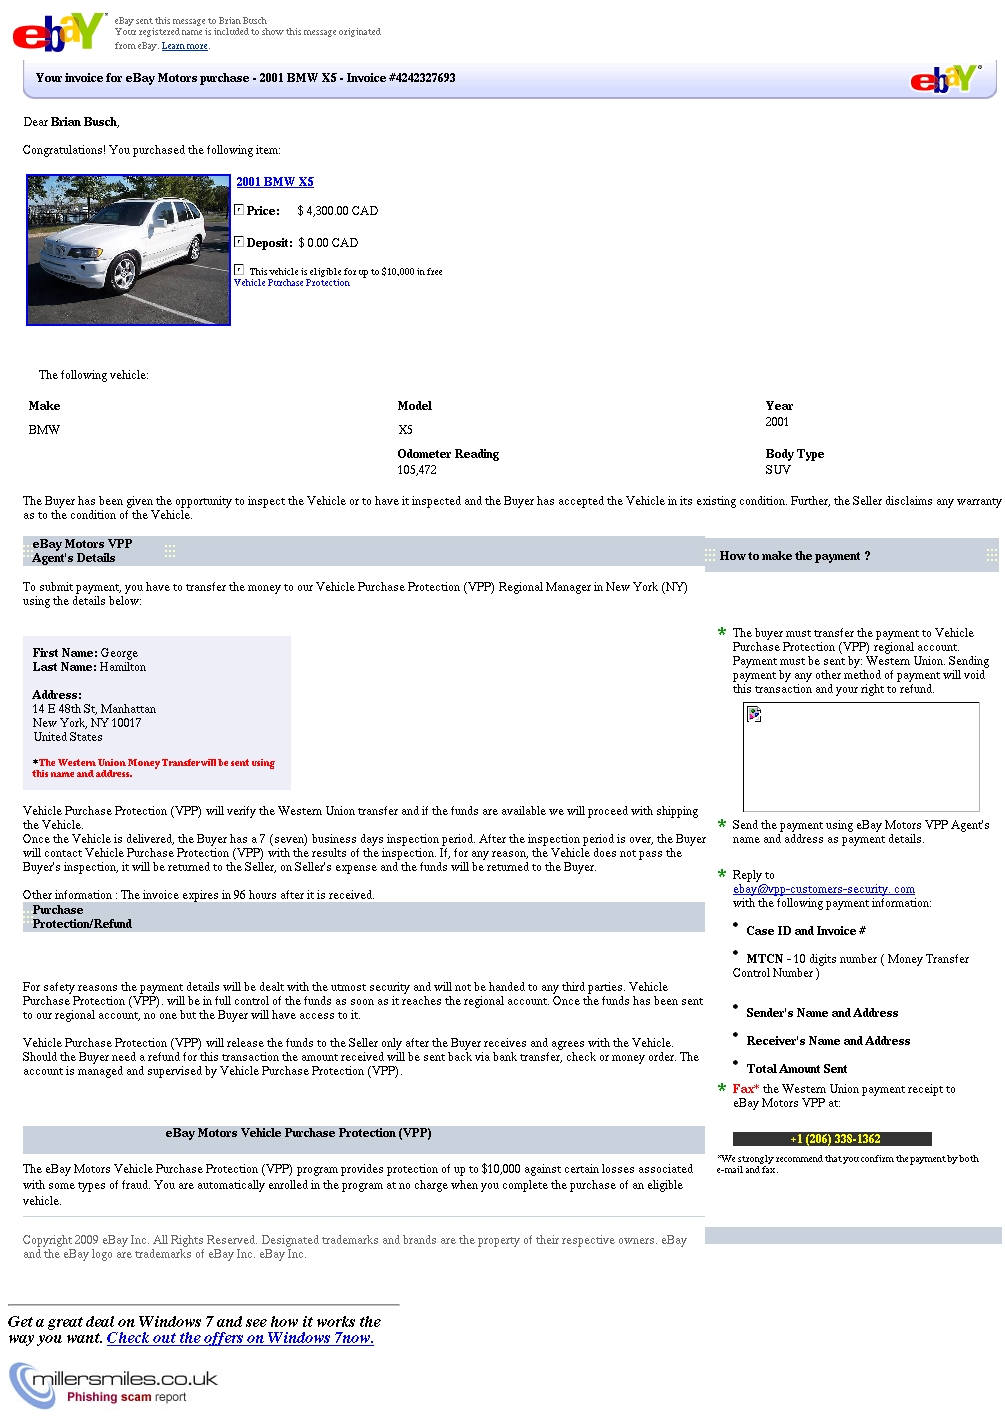 Your Invoice For Ebay Motors Purchase 2001 Bmw X5 Invoice 4242327693 Chase Phishing Scams Millersmiles Co Uk